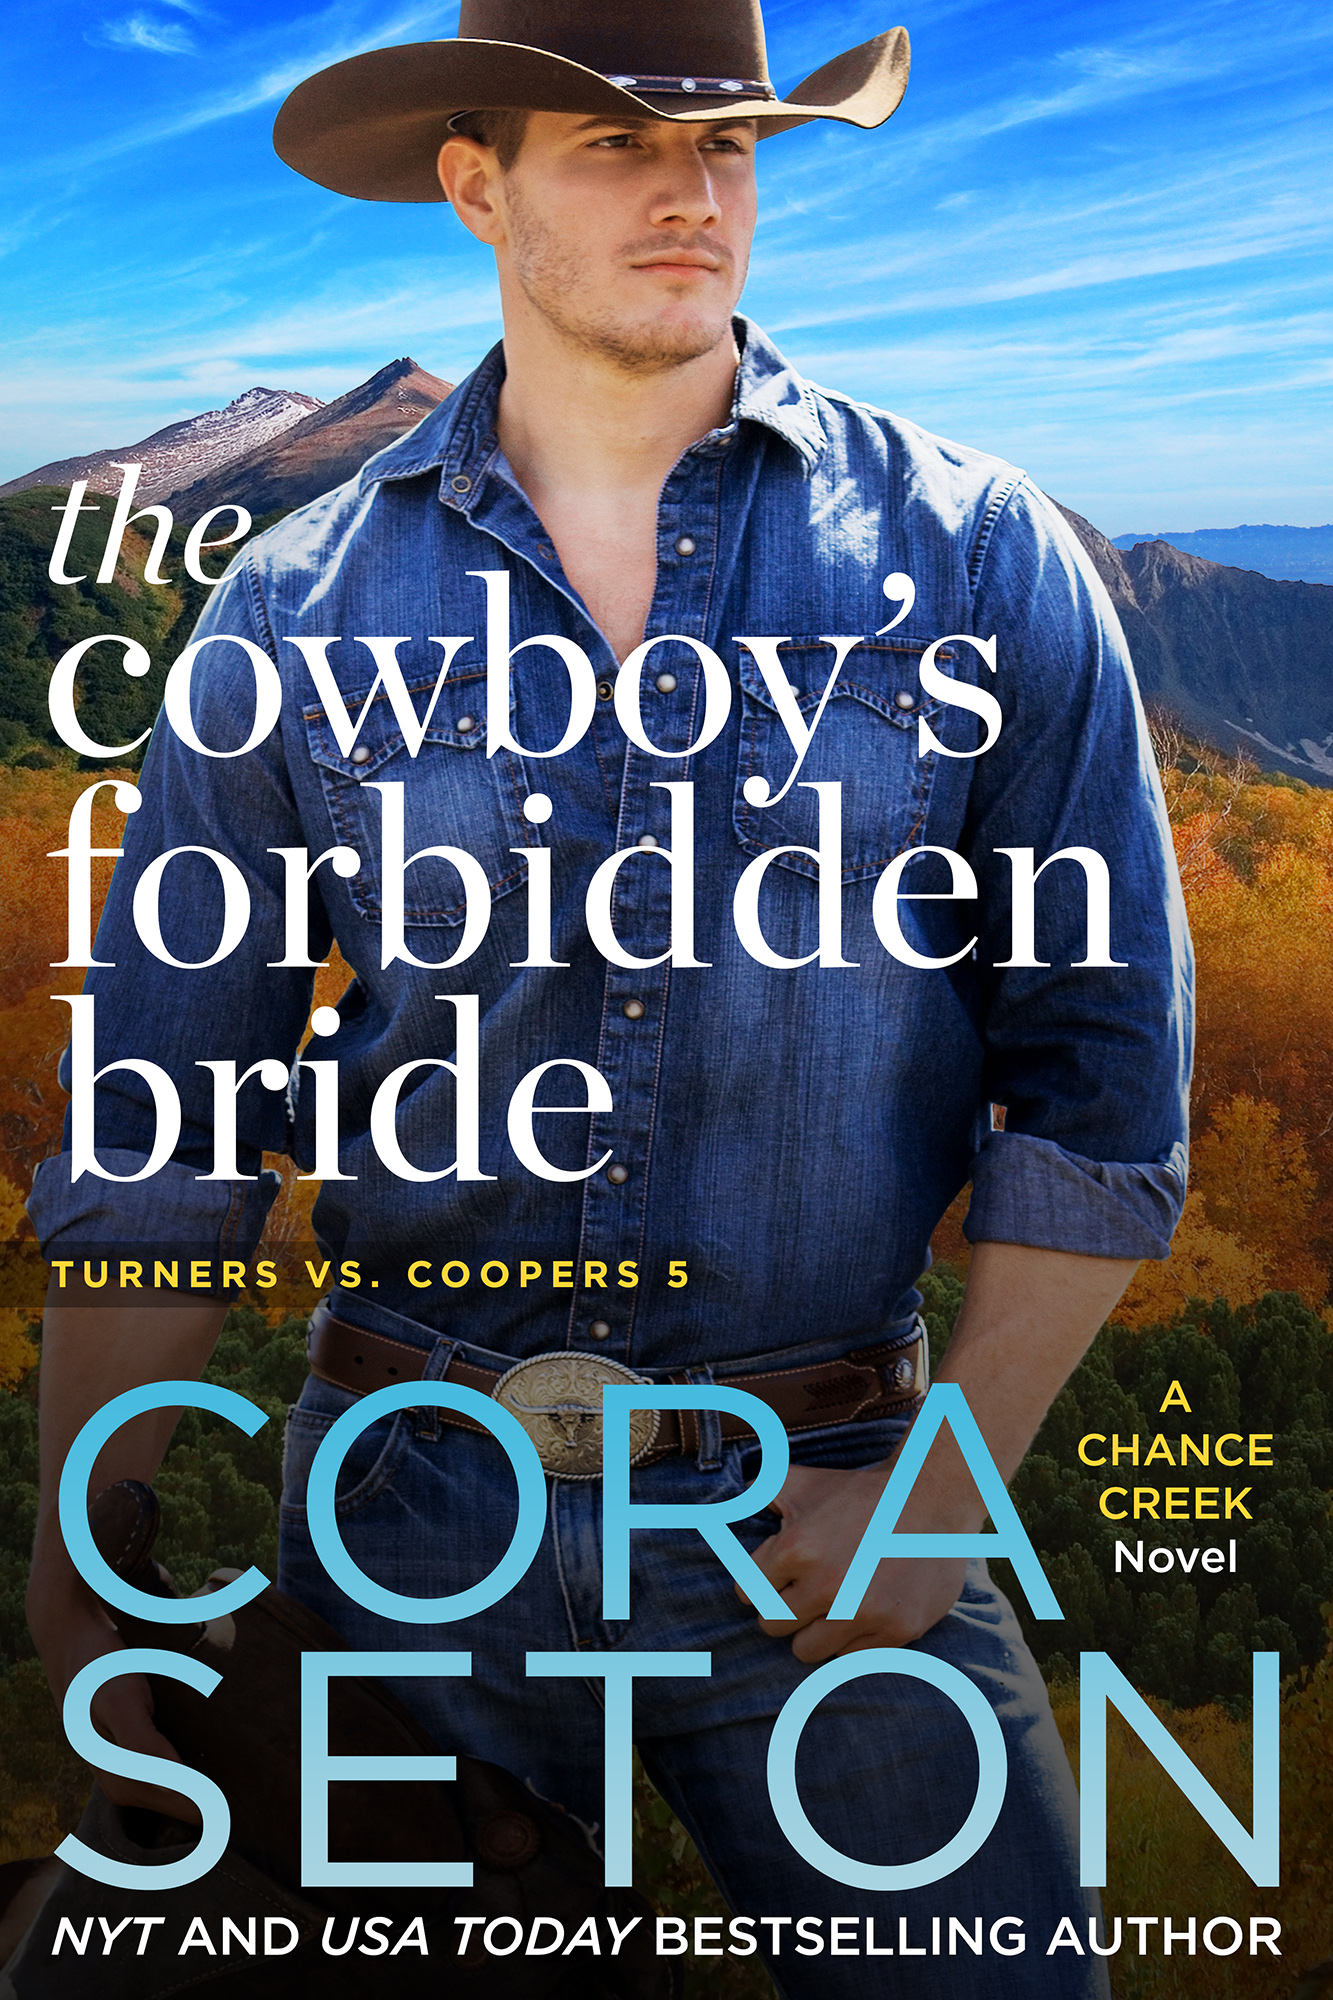 The Cowboy's Forbidden Bride